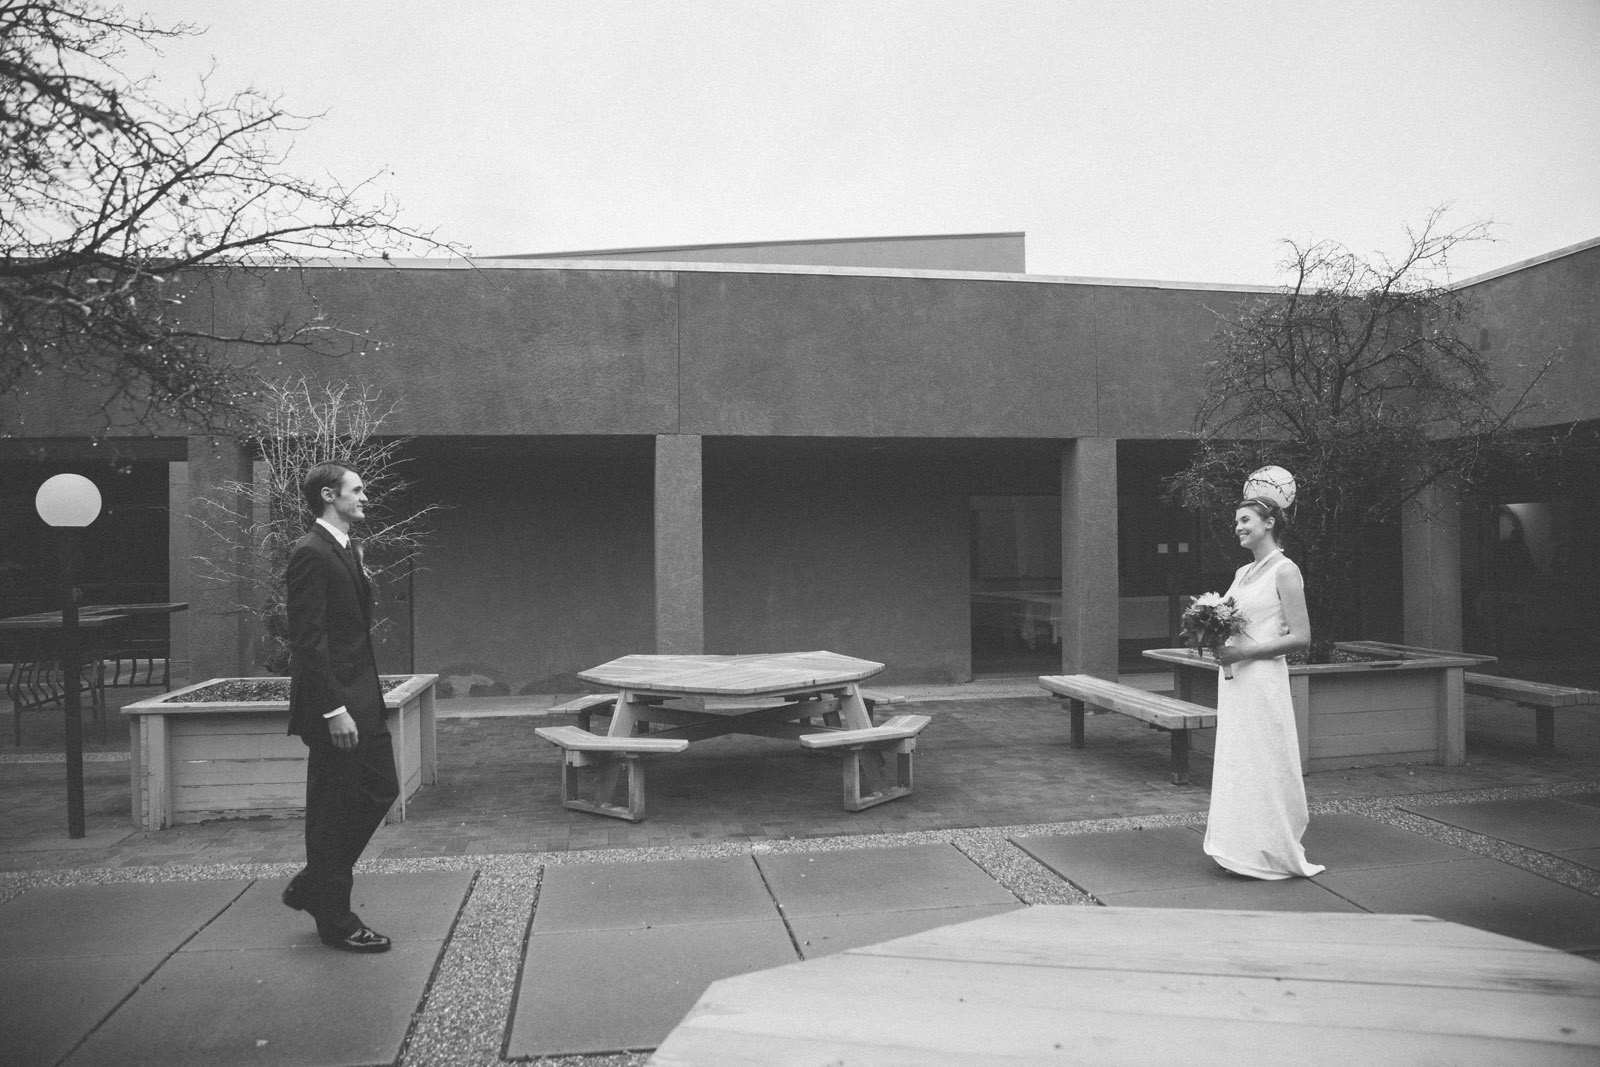 045-bride-and-groom-see-eachother-in-first-look-in-courtyard-before-the-ceremony-in-albuquerque-nm